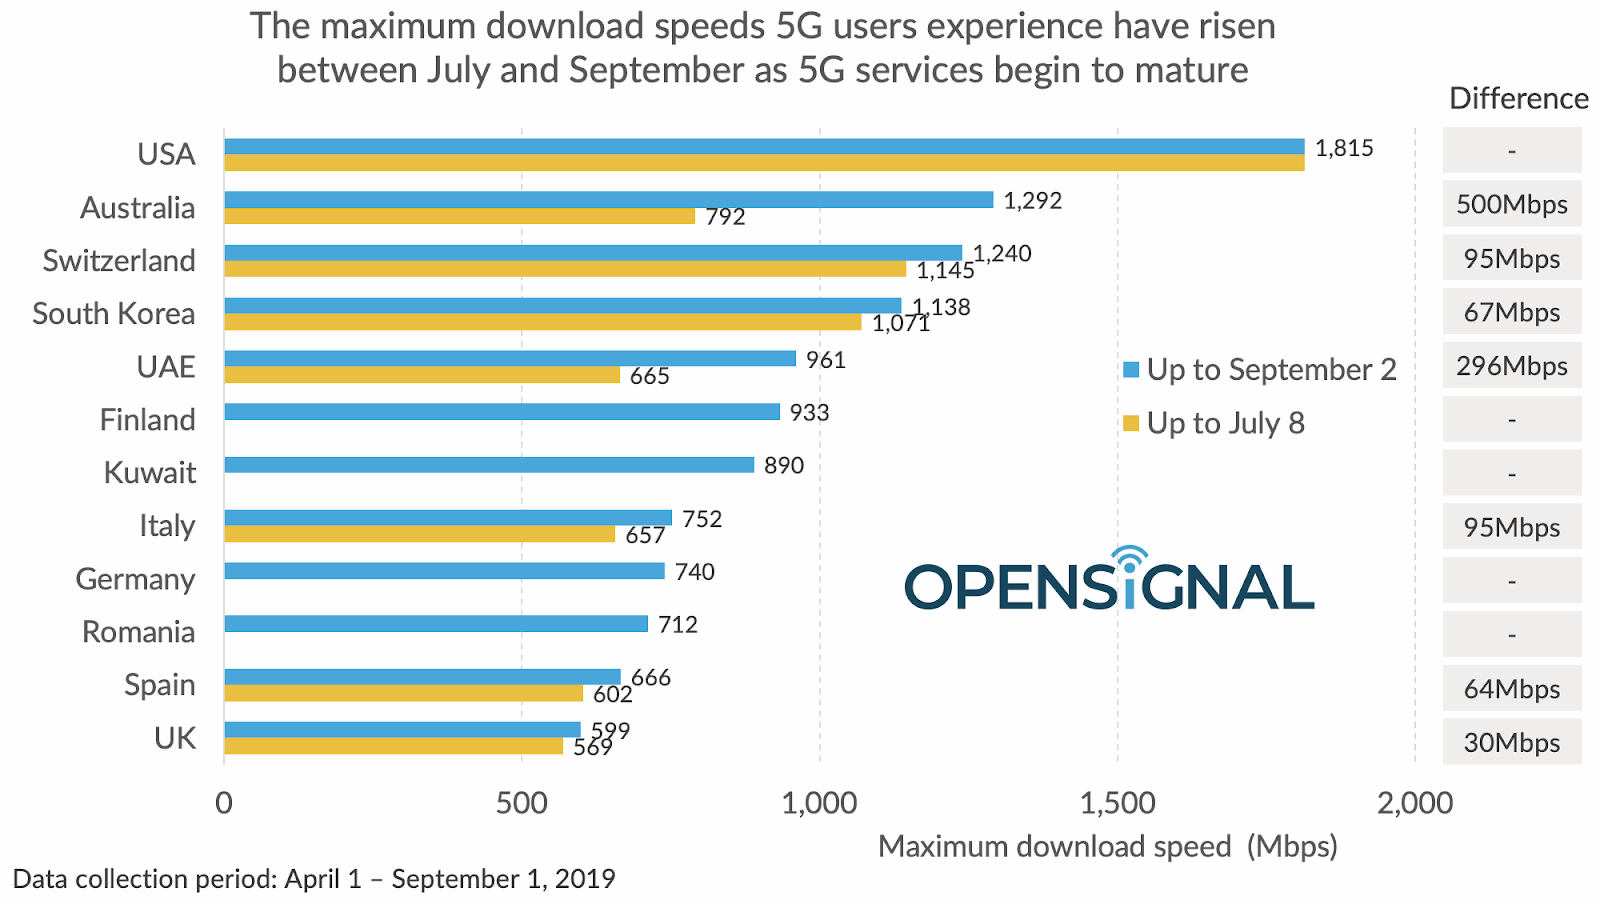 opensignal_5g_mobile_broadband_speeds_benchmark_sept_2019